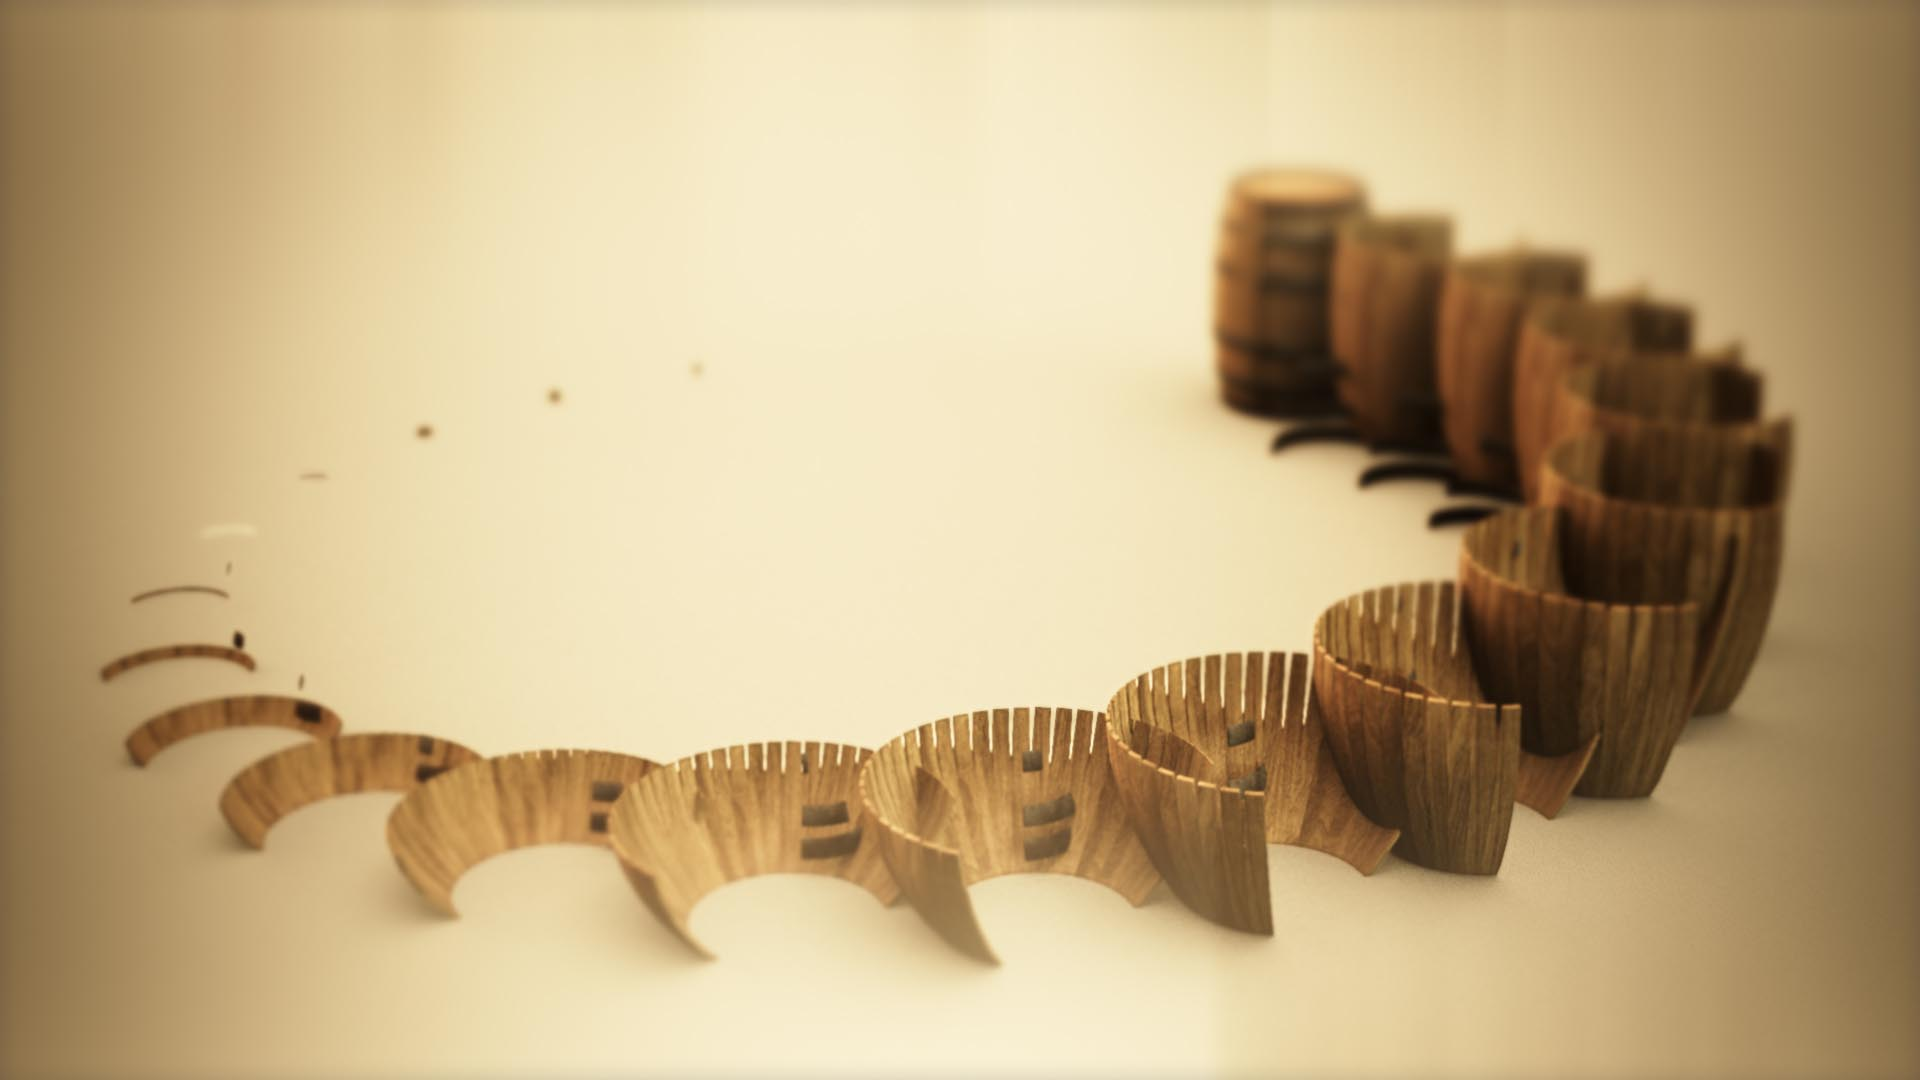 3D animation of wooden barrels forming a structure